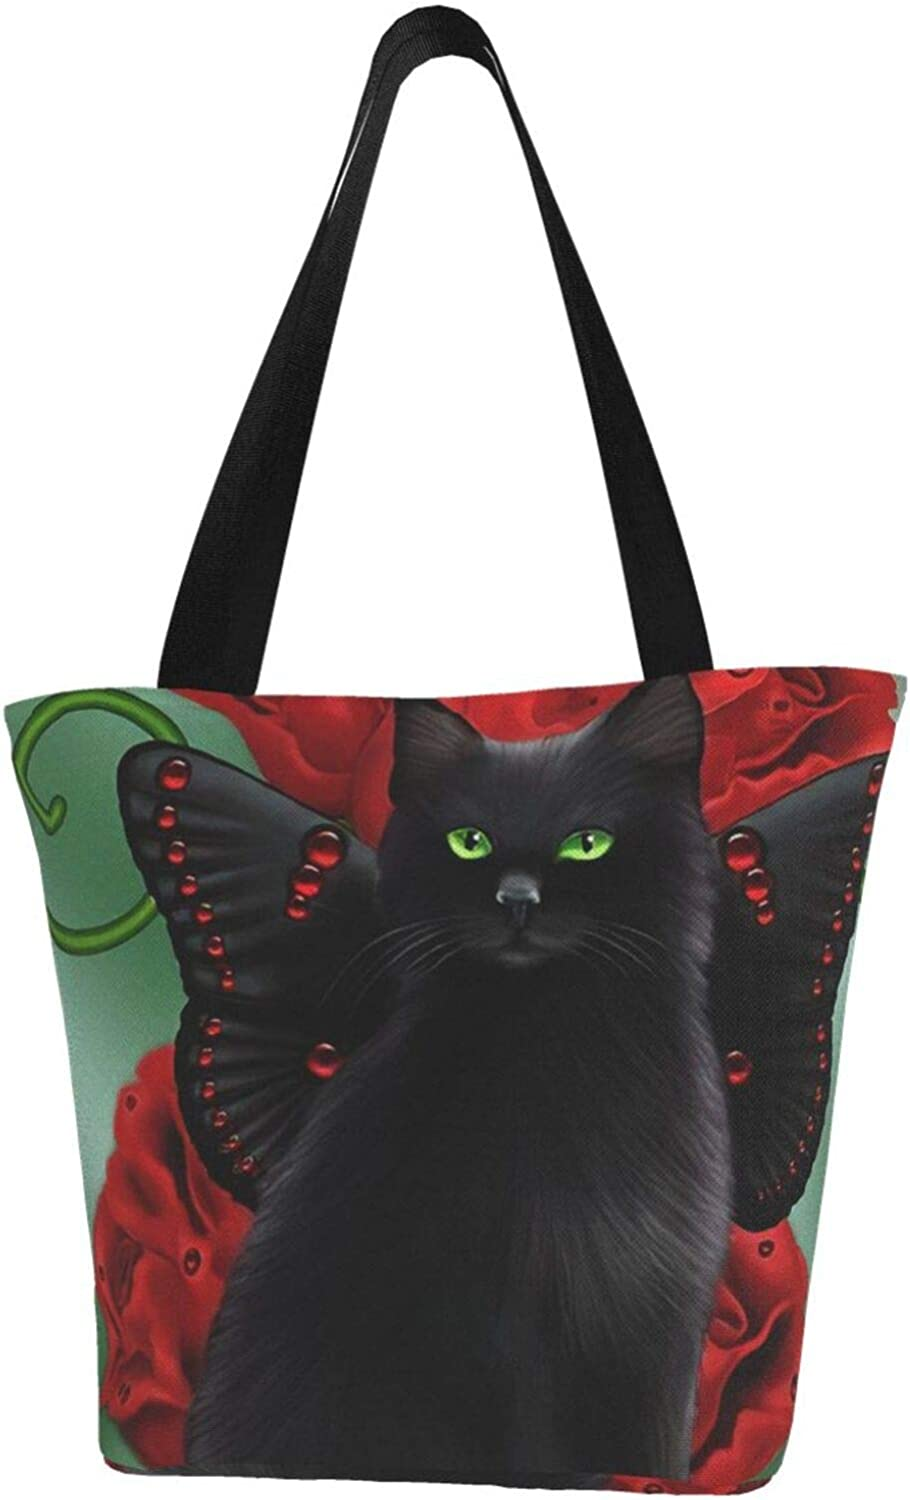 Black Cat Butterfly Red Flowers Gifts Pet Themed Printed Women Canvas Handbag Zipper Shoulder Bag Work Booksbag Tote Purse Leisure Hobo Bag For Shopping